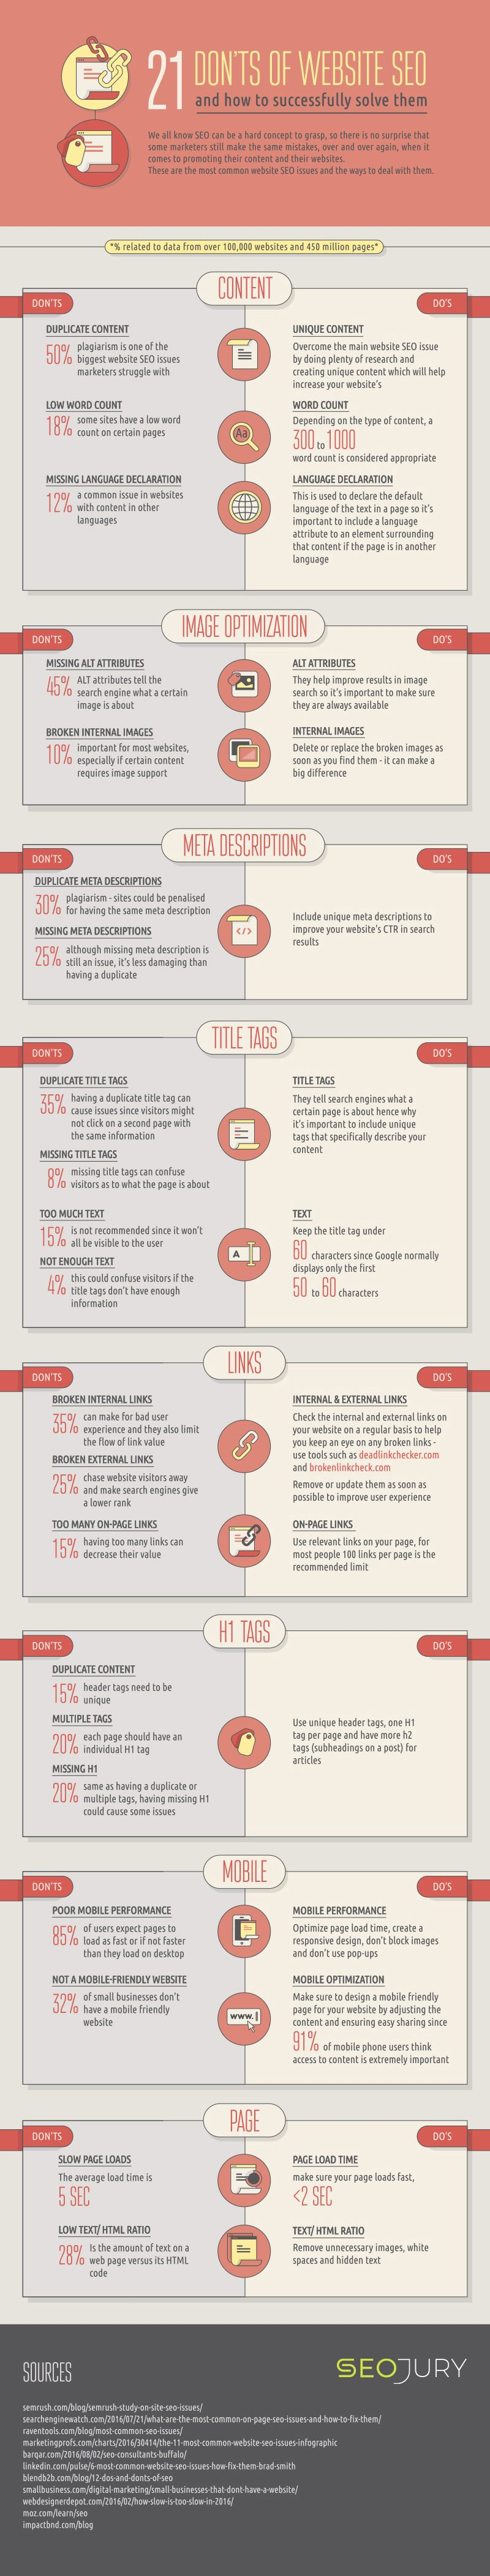 21 SEO Mistakes Destroying Your Website [Infographic] | Social Media Today